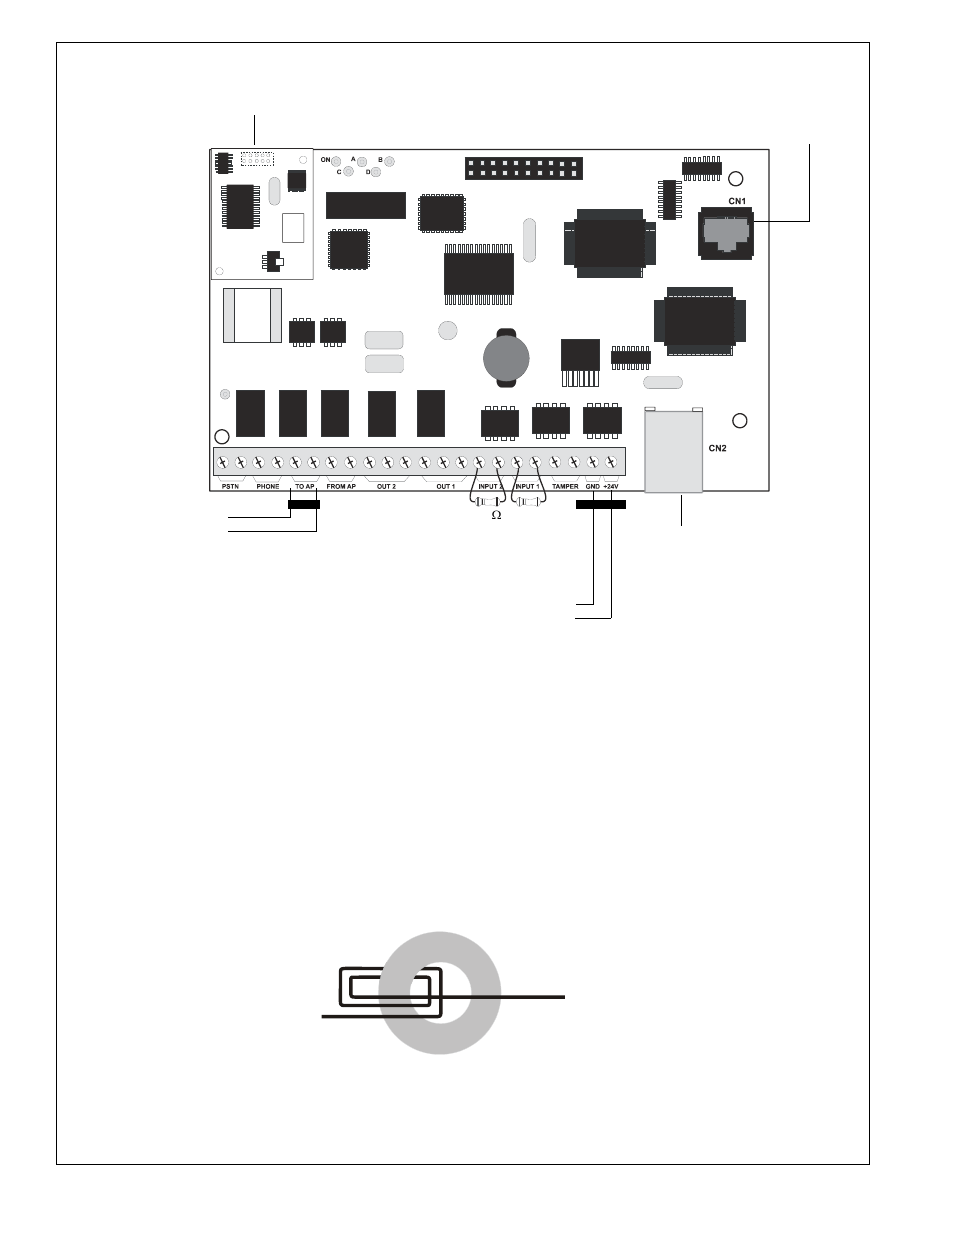 hight resolution of ferrite bead installation figure 6 ipdact 2 and ipdact 2ud wiring figure 7 ferrite bead installation silentknight ip communicator user manual page 8